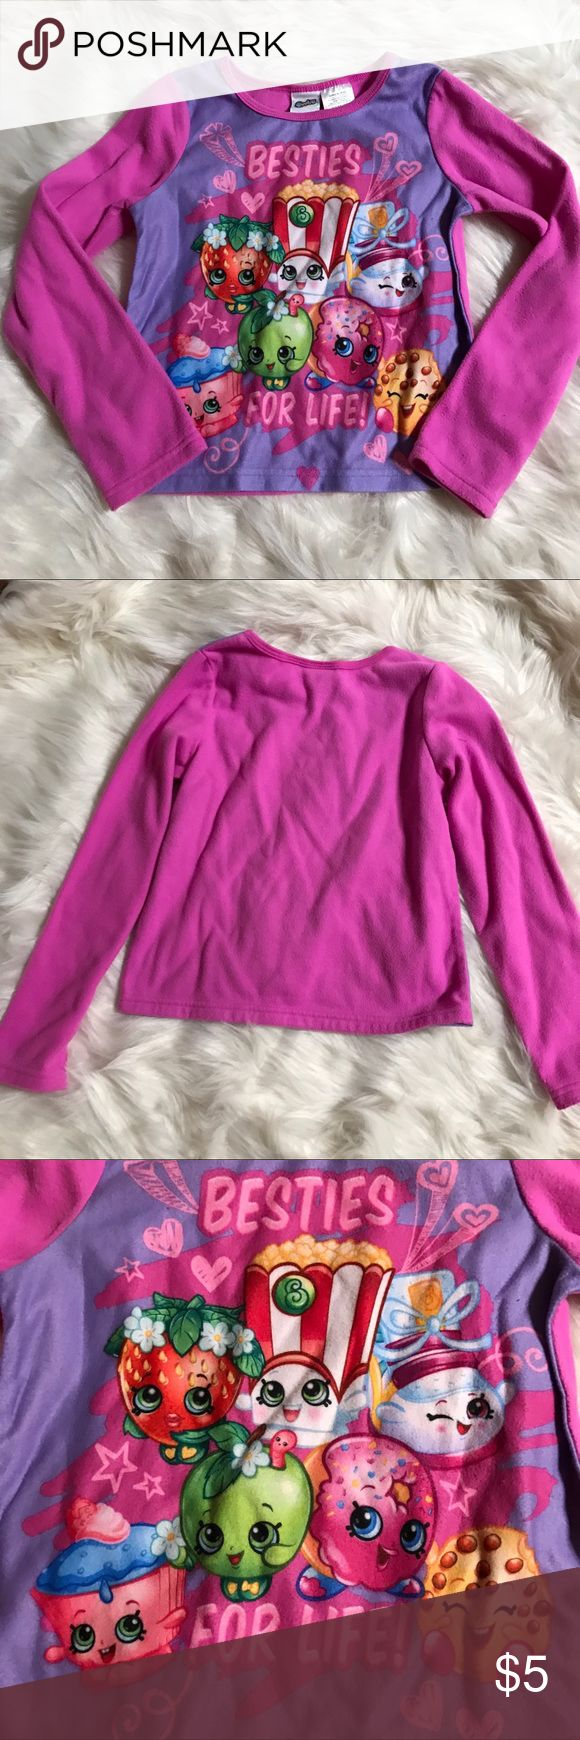 """🍉Besties For Life Shopkins Pajama Top Super cute shopkins pajama top. This listing is just for the top, the bottoms are not available. In good condition. Size girls 7/8. This is a buy two get one free item!  To get this deal add the three items you want that has a """"🍉"""" in front of the title into a bundle. Then offer the price of the two of the items. Pajamas Pajama Tops"""